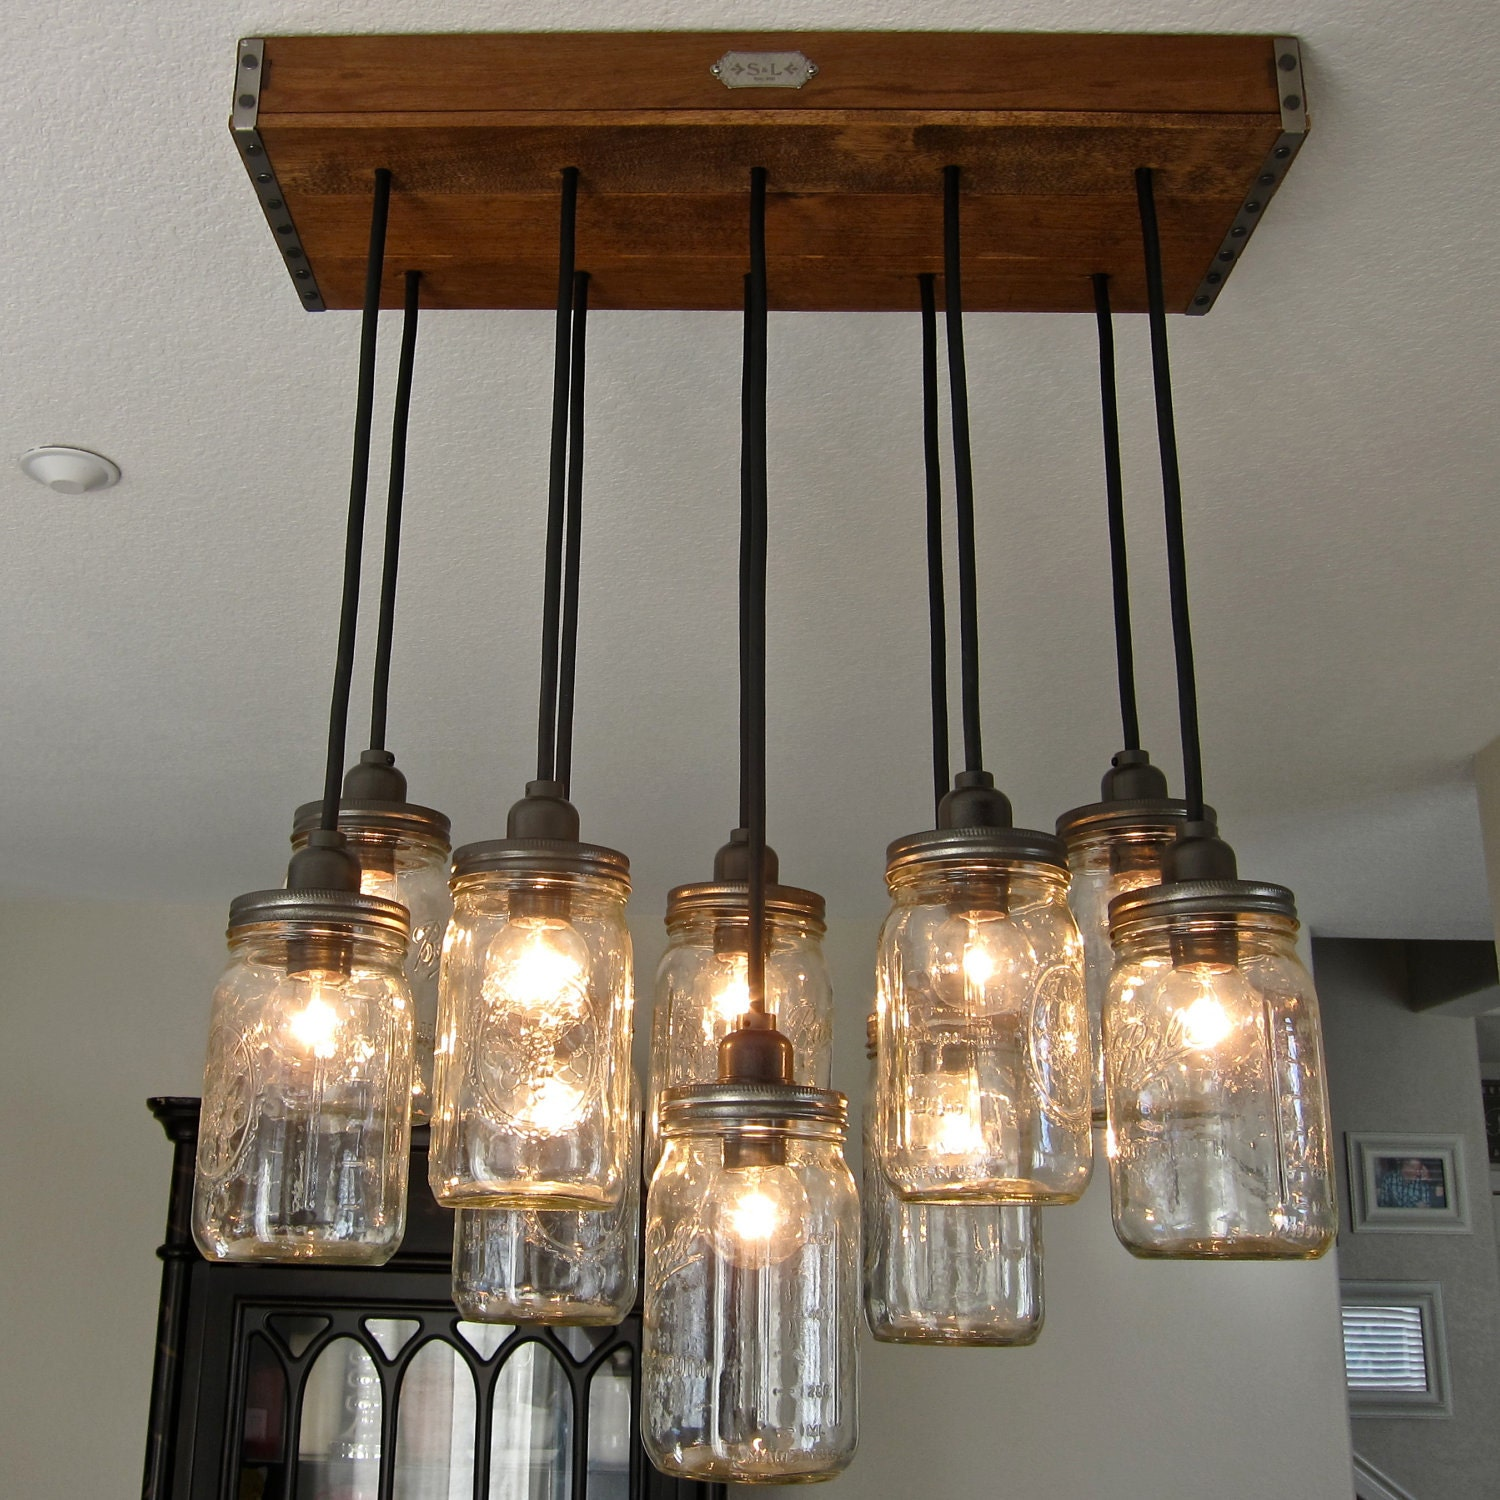 14 Light Diy Mason Jar Chandelier Rustic Cedar Rustic Wood: Handcrafted 14 Mason Jar Pendant Light Chandelier W/ Rustic